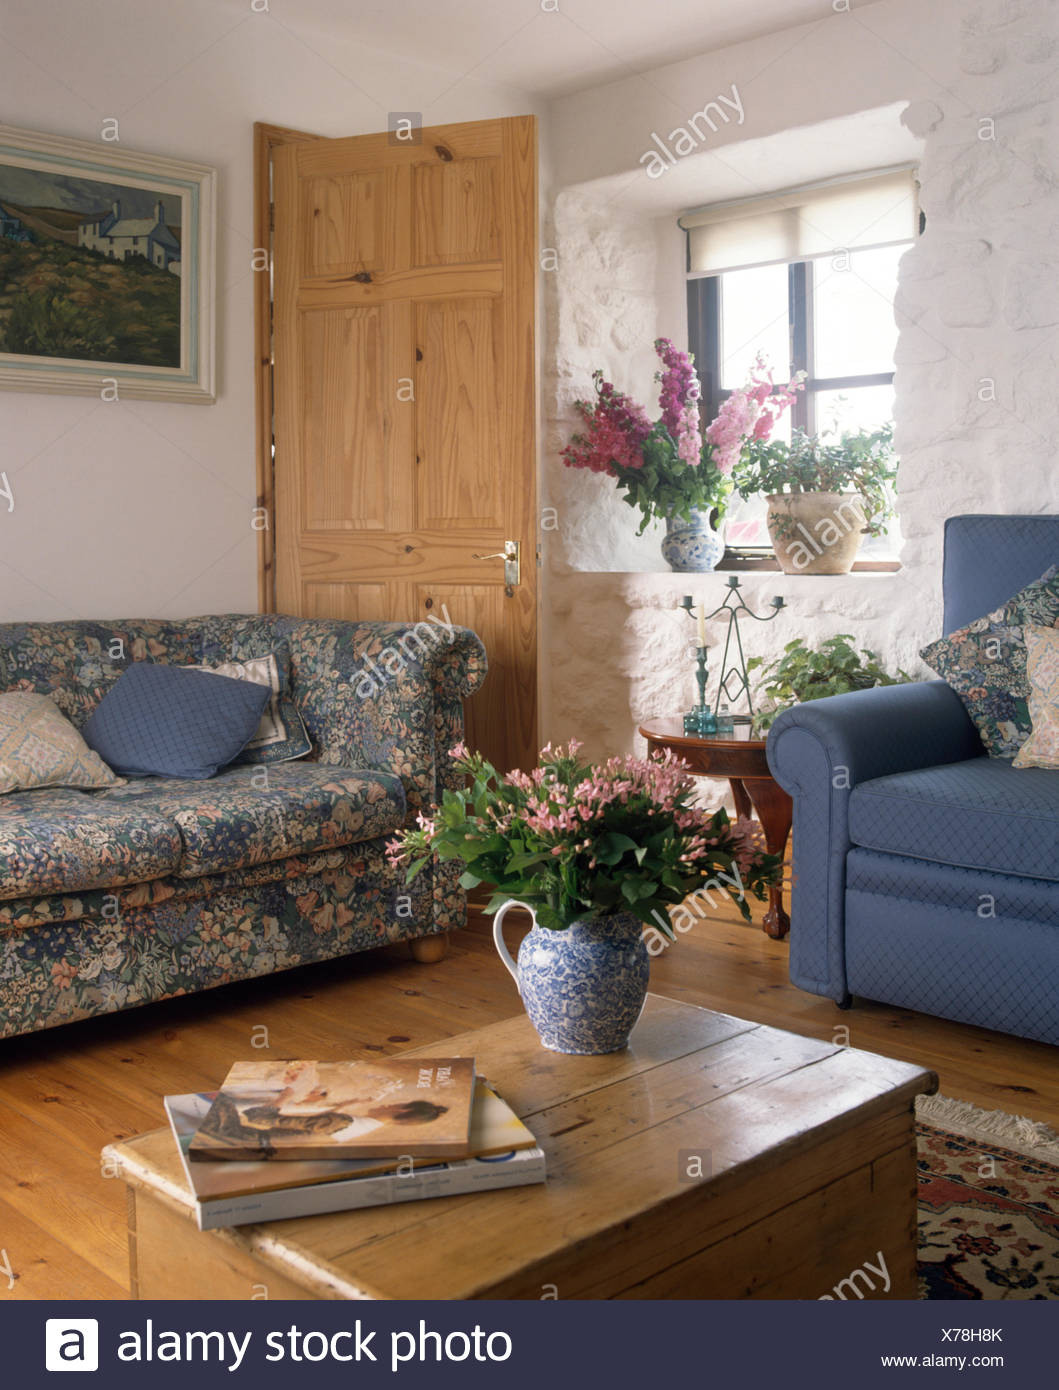 Old Pine Chest And Blue Patterned Chesterfield Sofa With A Blue Armchair In  A Nineties Cottage Living Room With